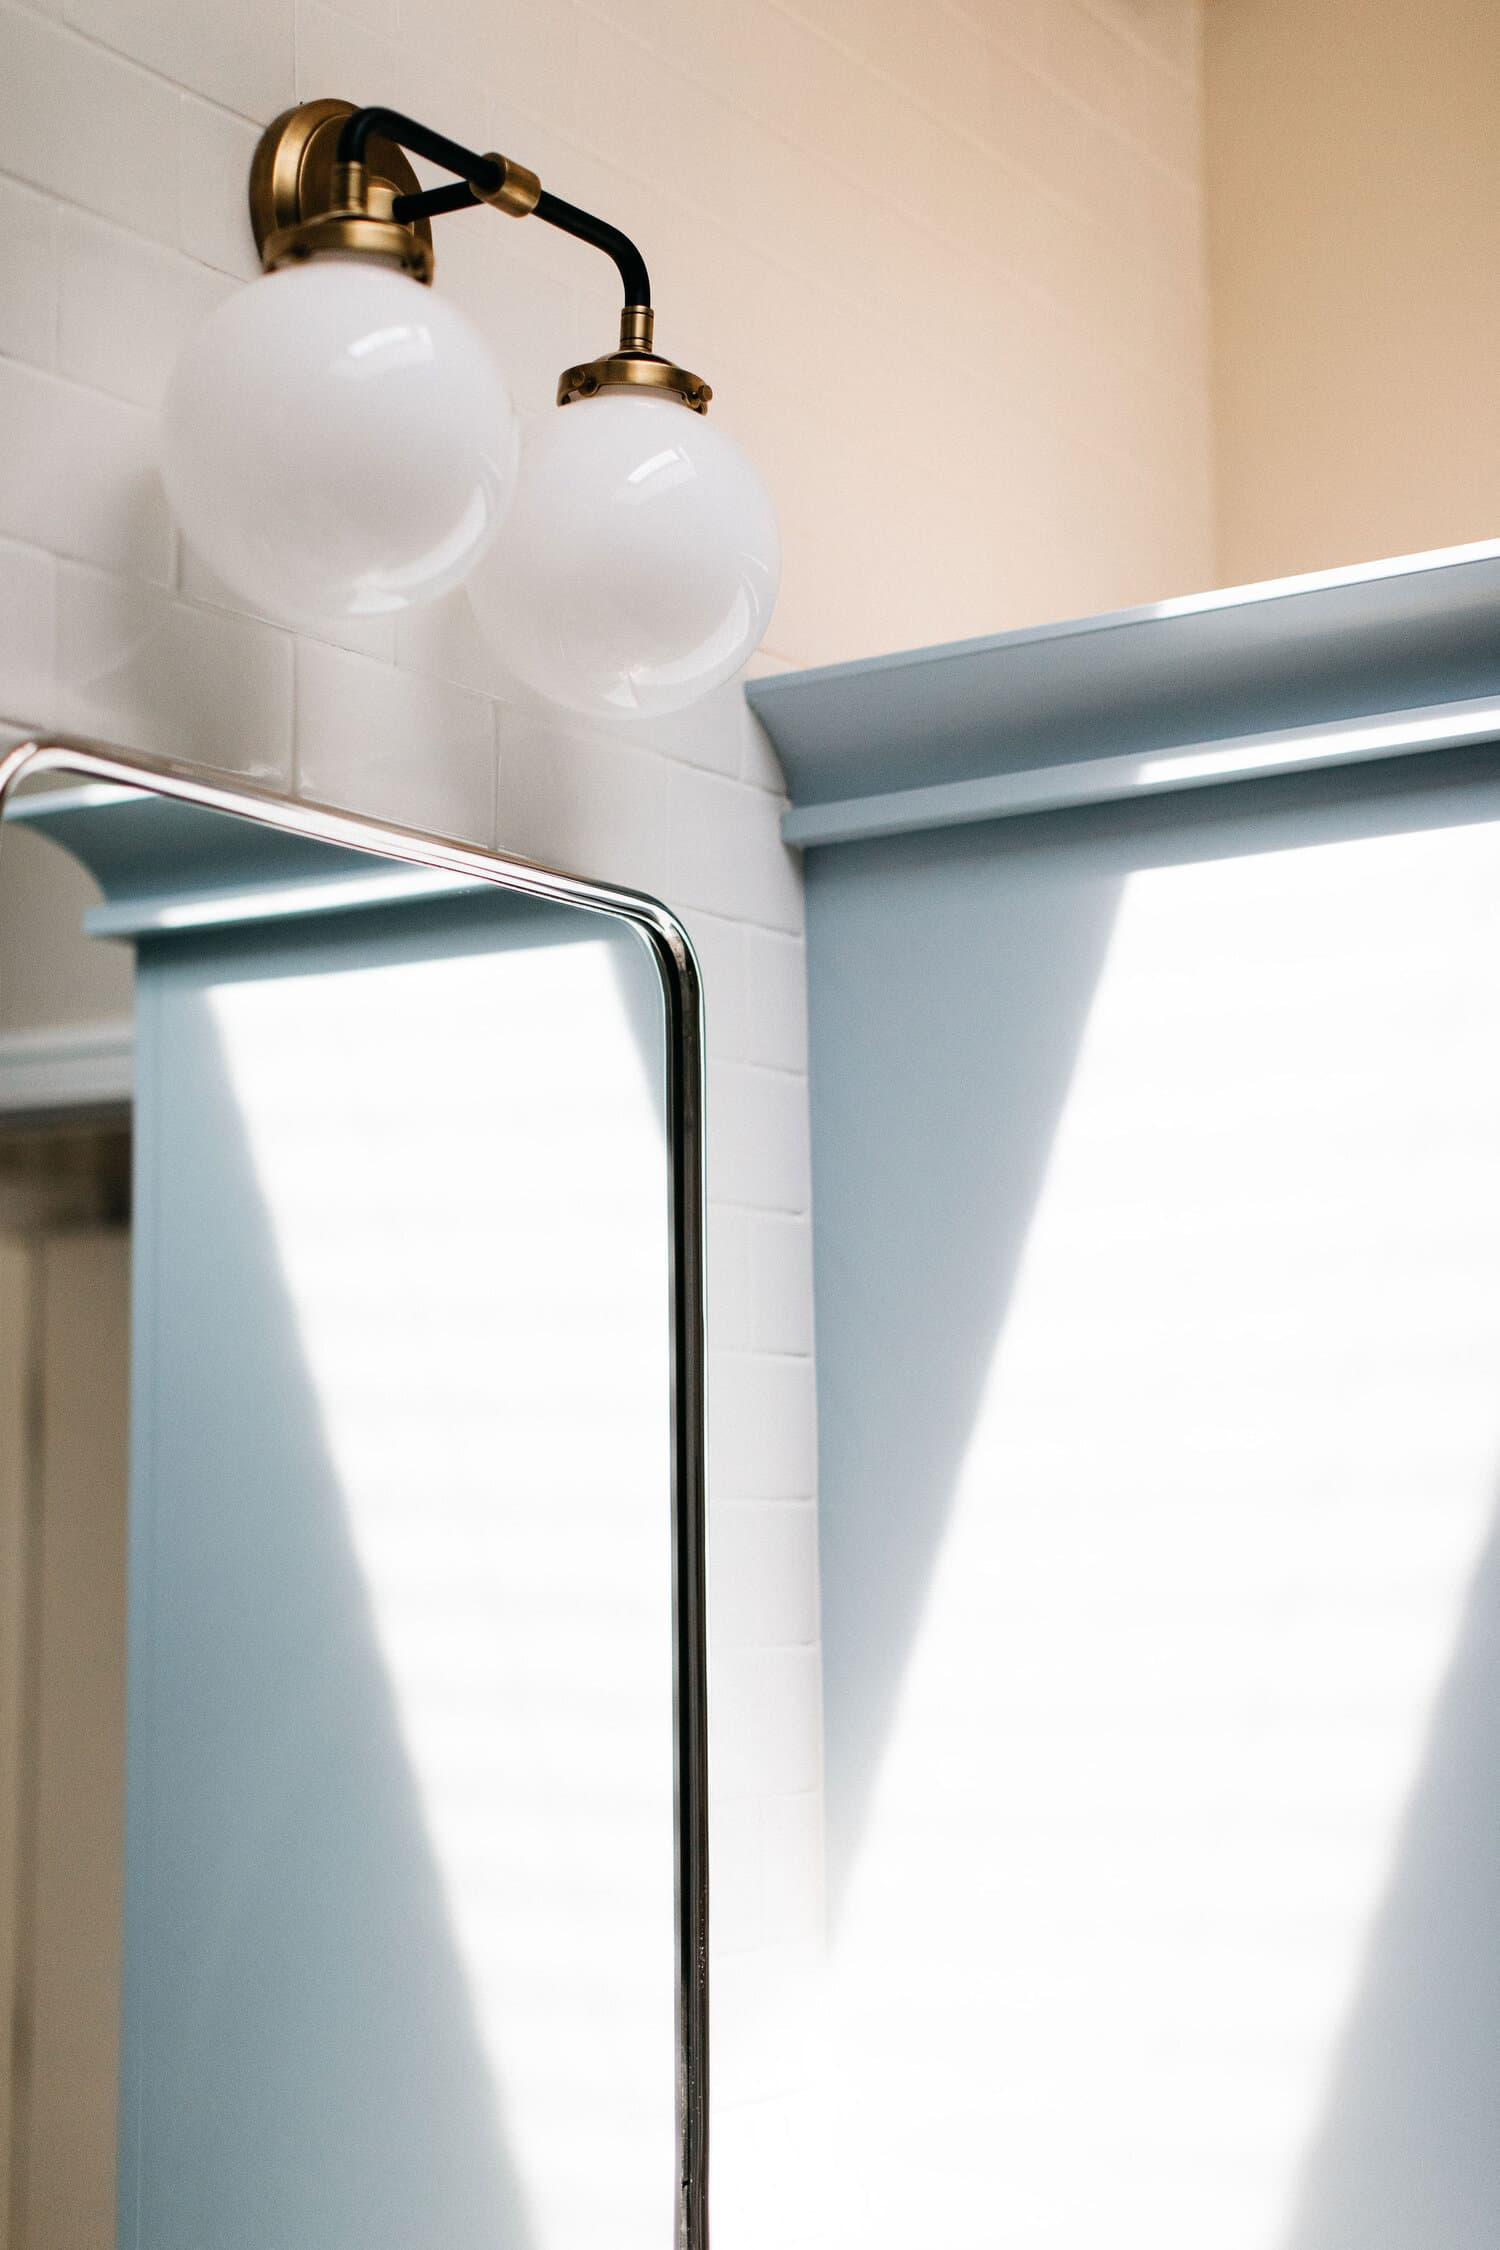 this is a bathroom with pale blue colours and brass elements